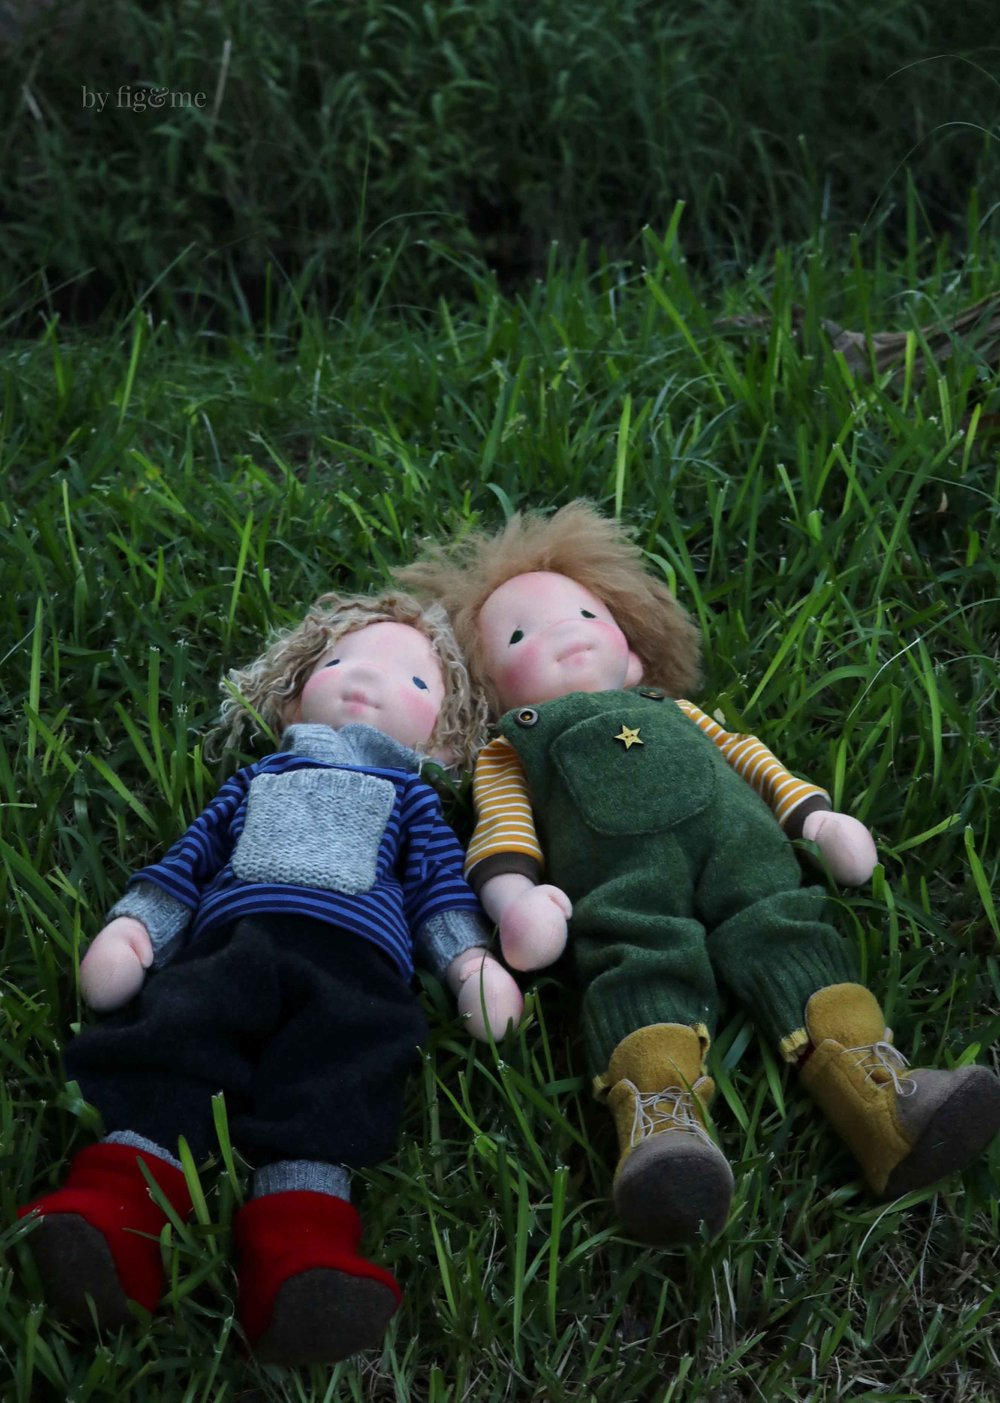 Two natural dolls in the garden, Amos and Wulfric, by Fig and Me.